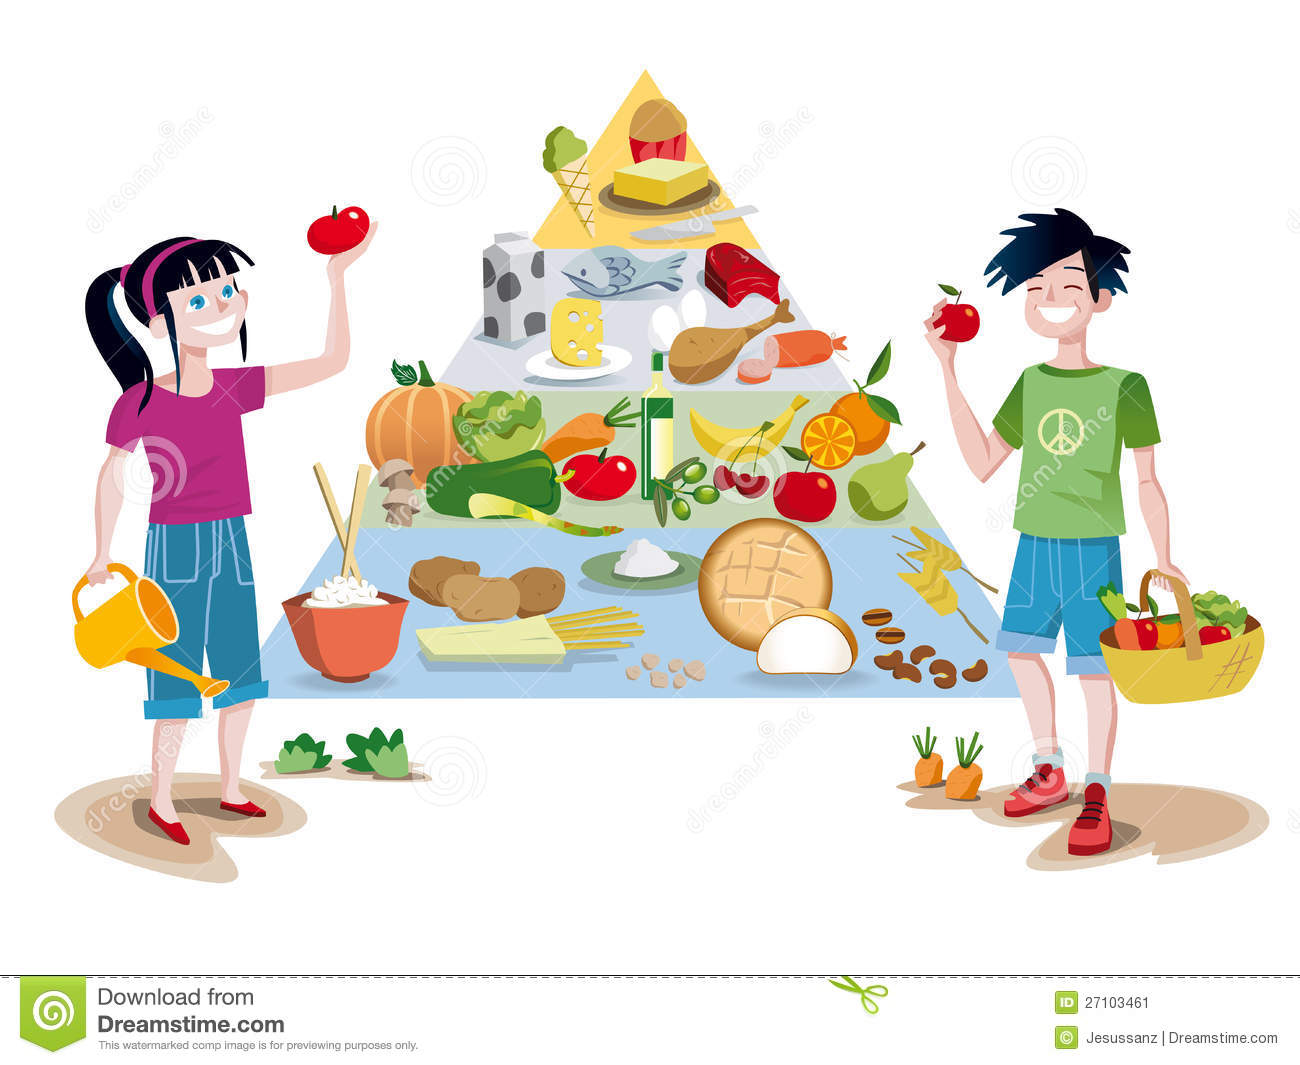 Children eating healthy food clipart.